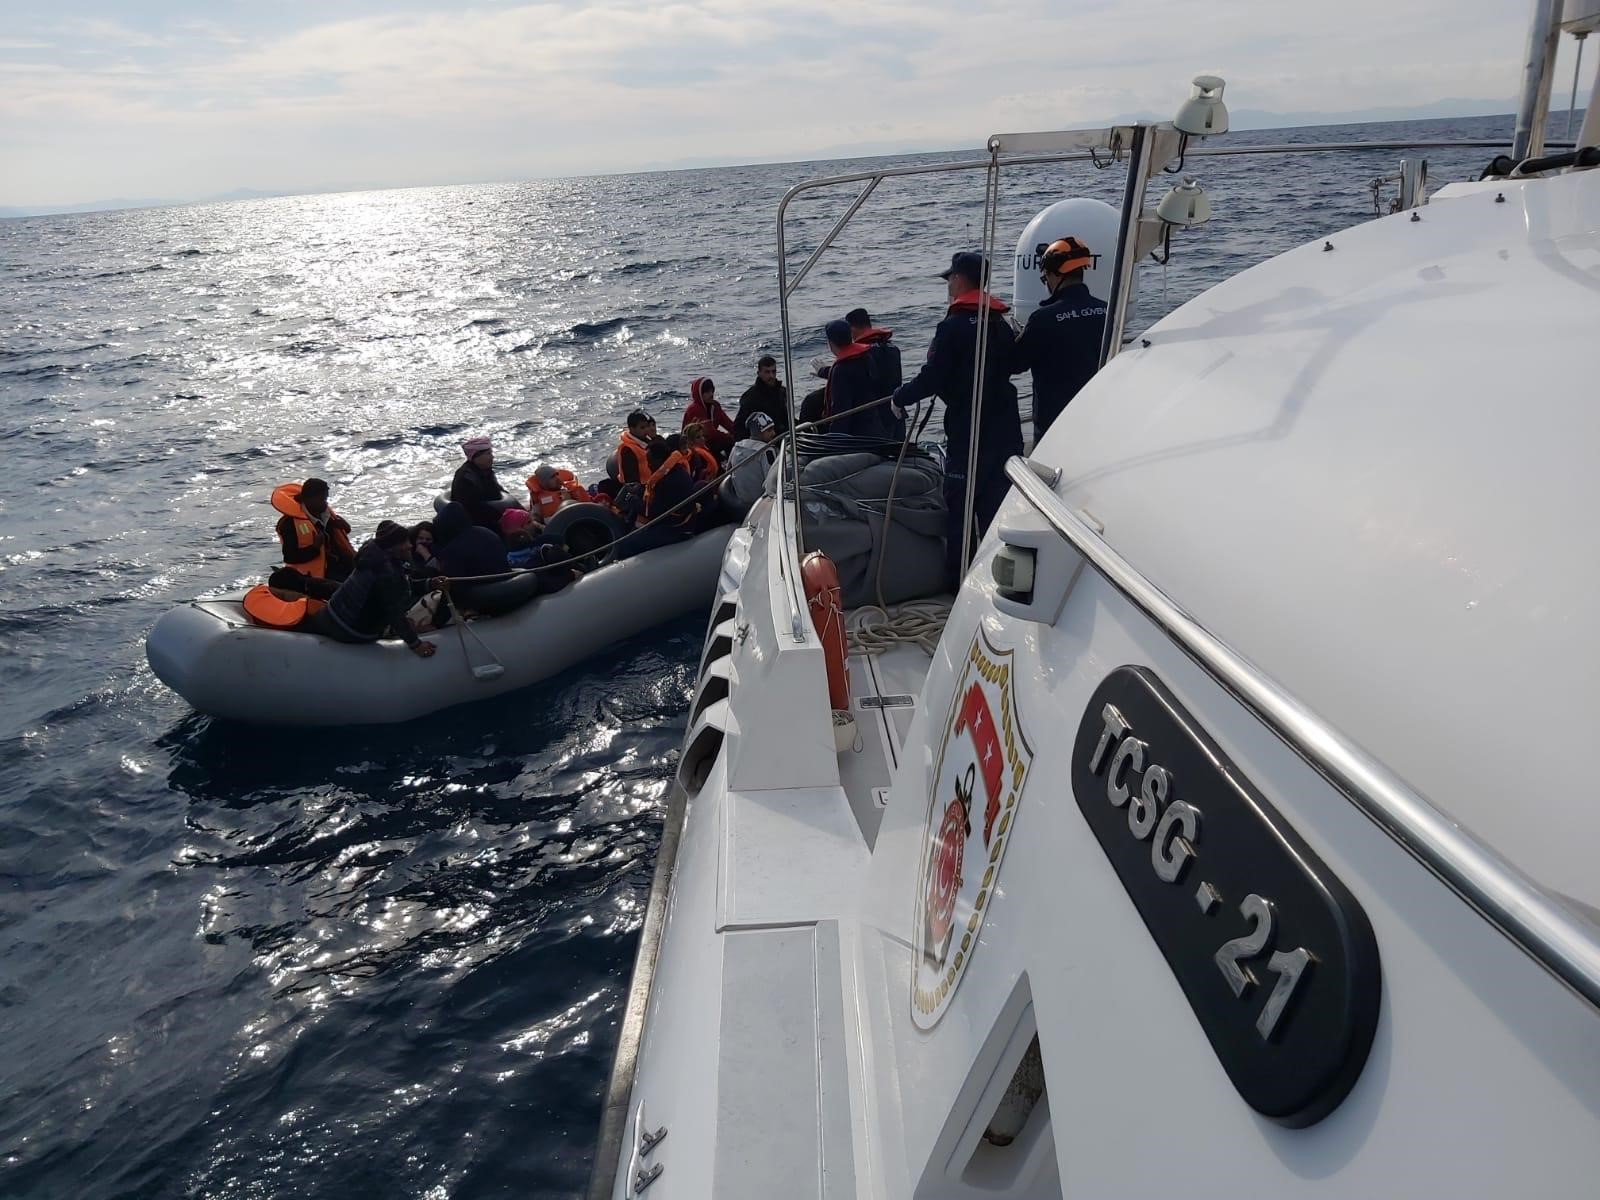 34 Irregular Migrants Were Apprehended Off The Coast Of Aydin